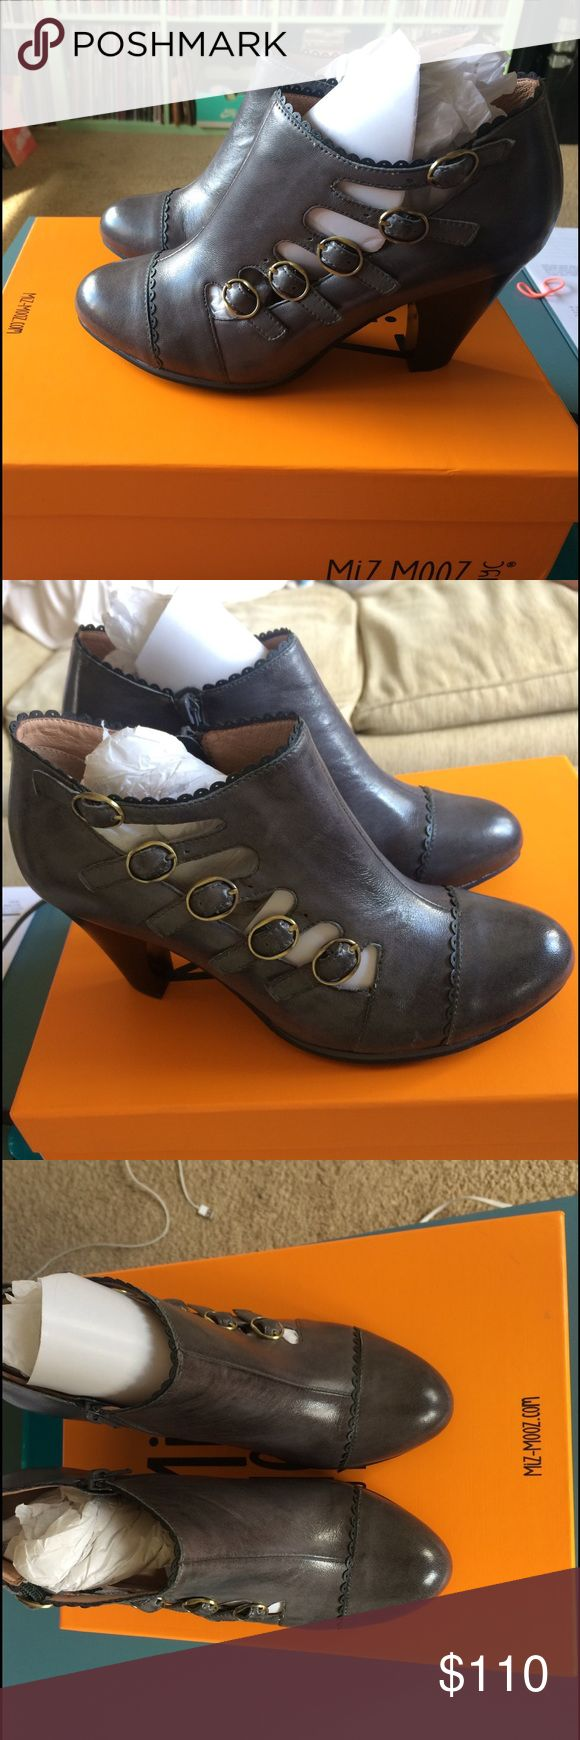 BRAND NEW Miz Mooz Charita booties US7,5-8 Got them as a gift but they are not really my style! Completely flawless comes with box and also extra heel bits!! Make an offer! Original is $147 so no low balling please! Miz Mooz Shoes Ankle Boots & Booties